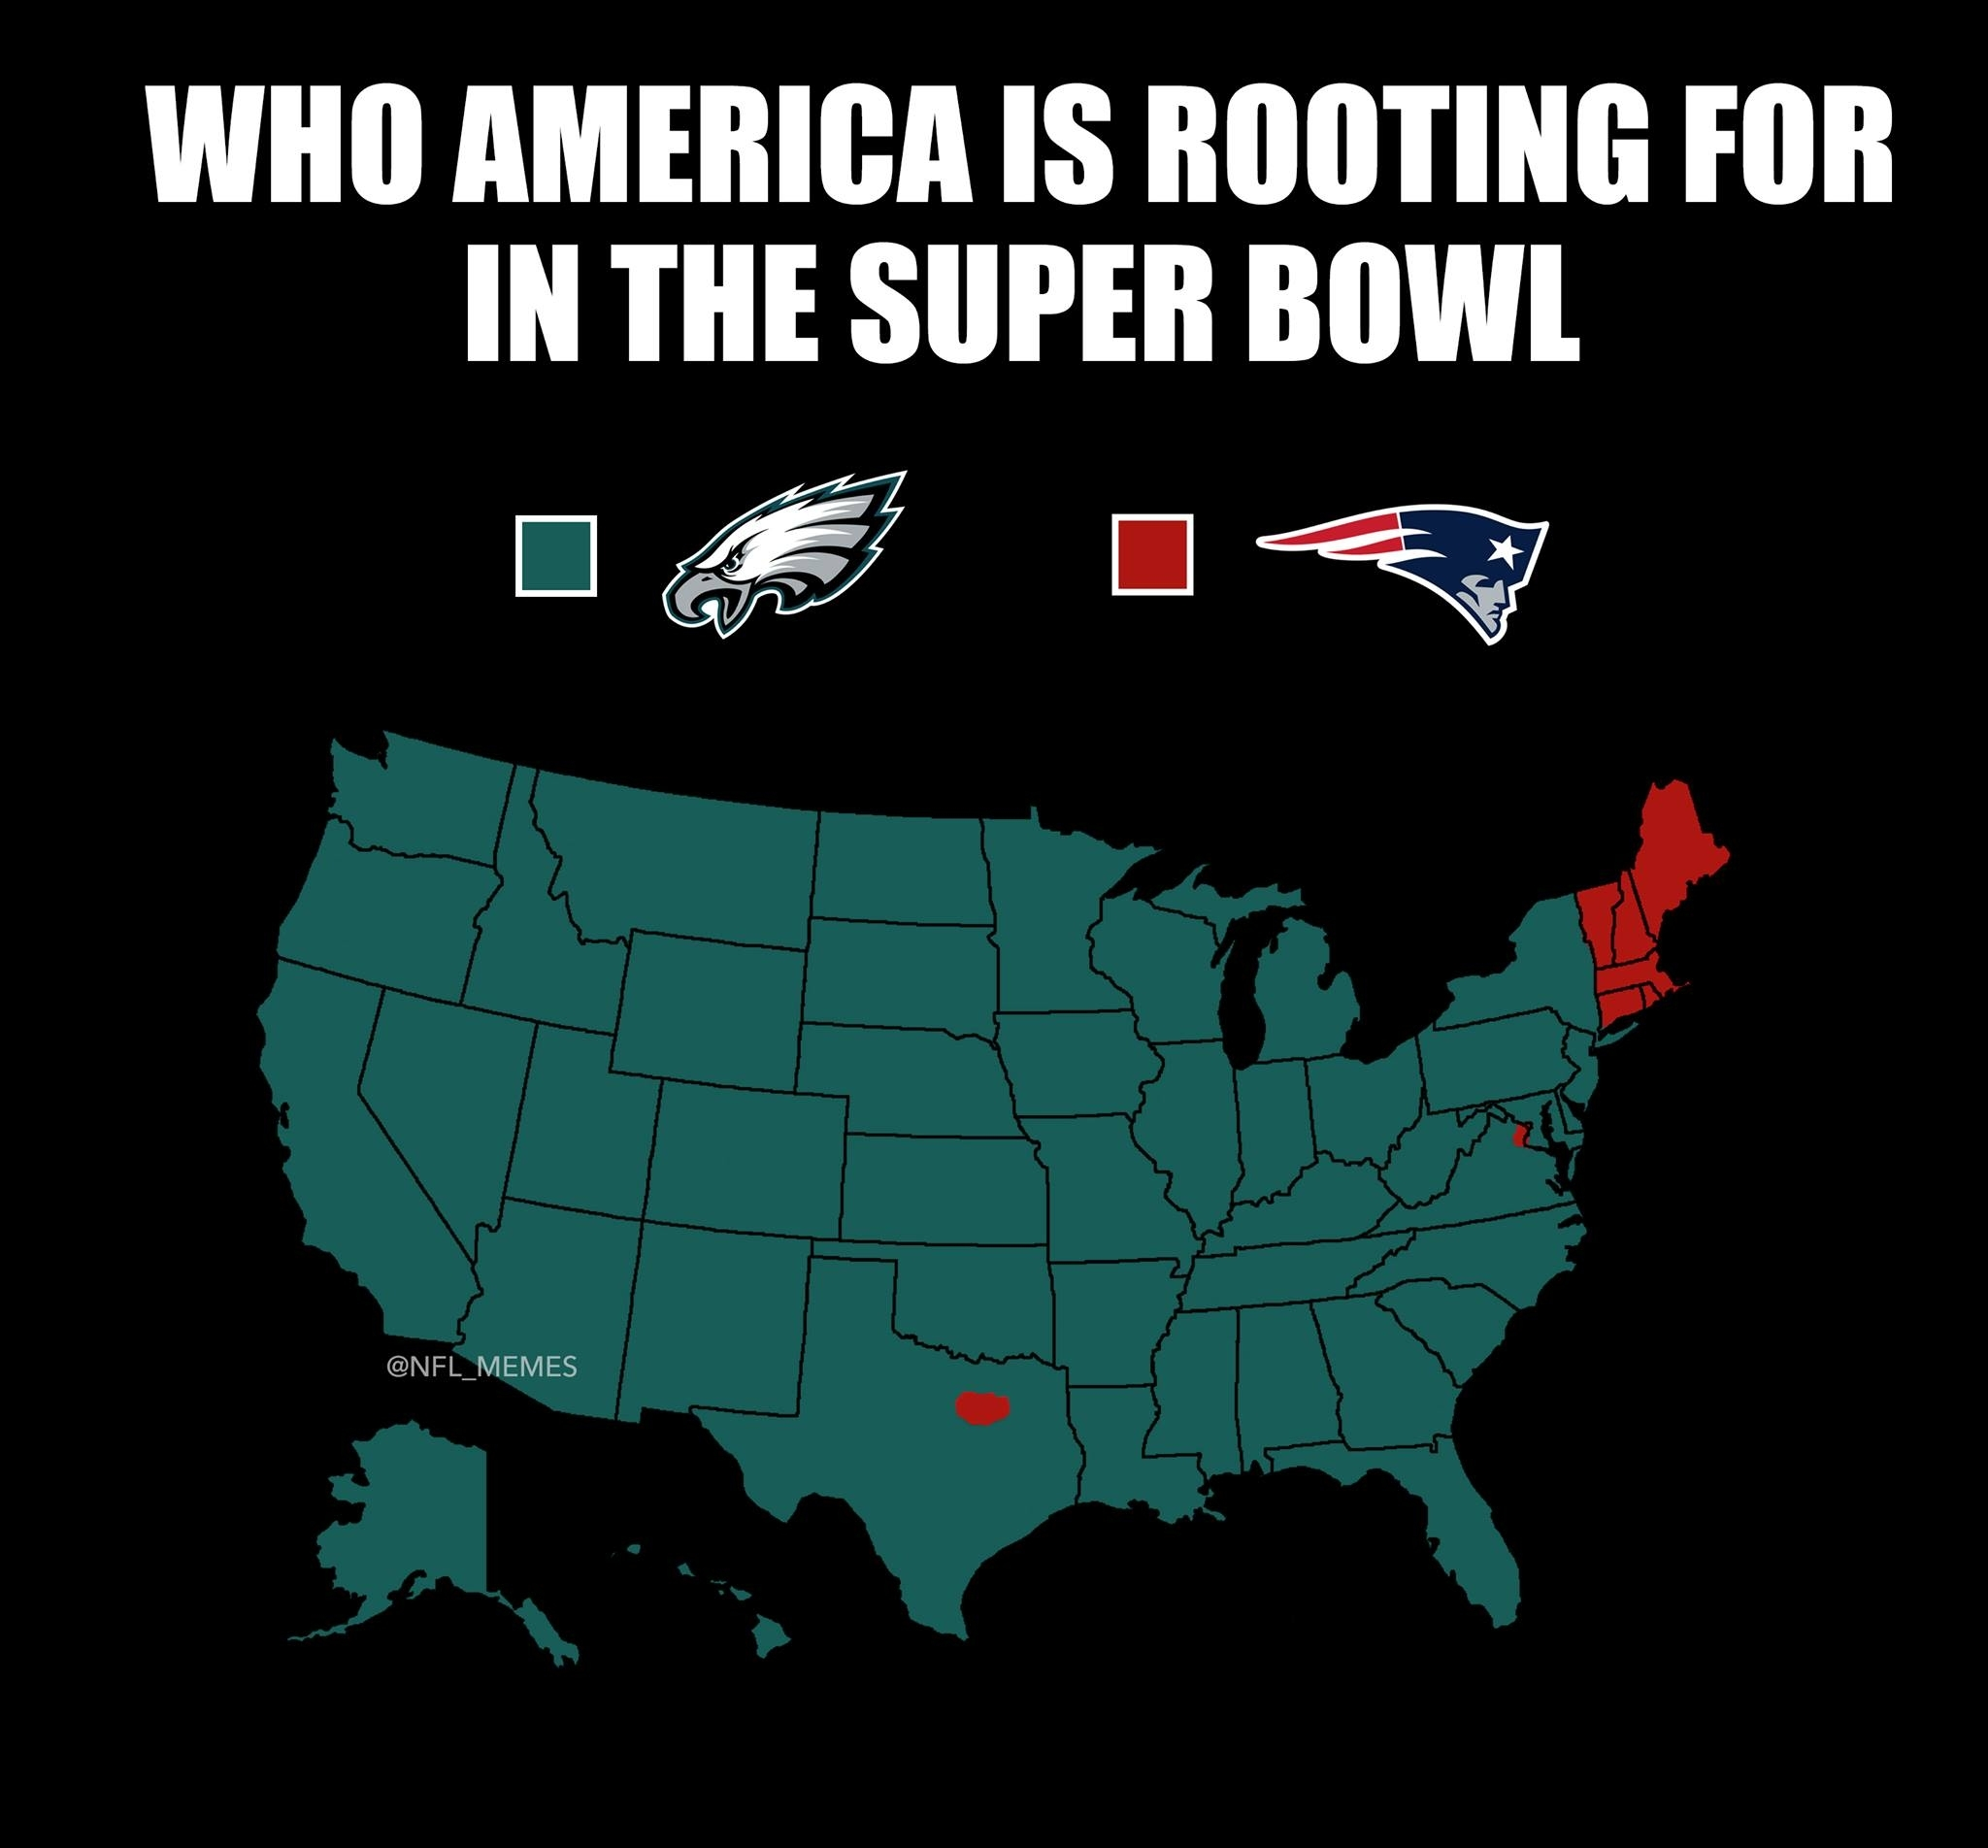 10 Funny American Football Pictures That You Must See Before throughout Super Bowl Map Meme 2019